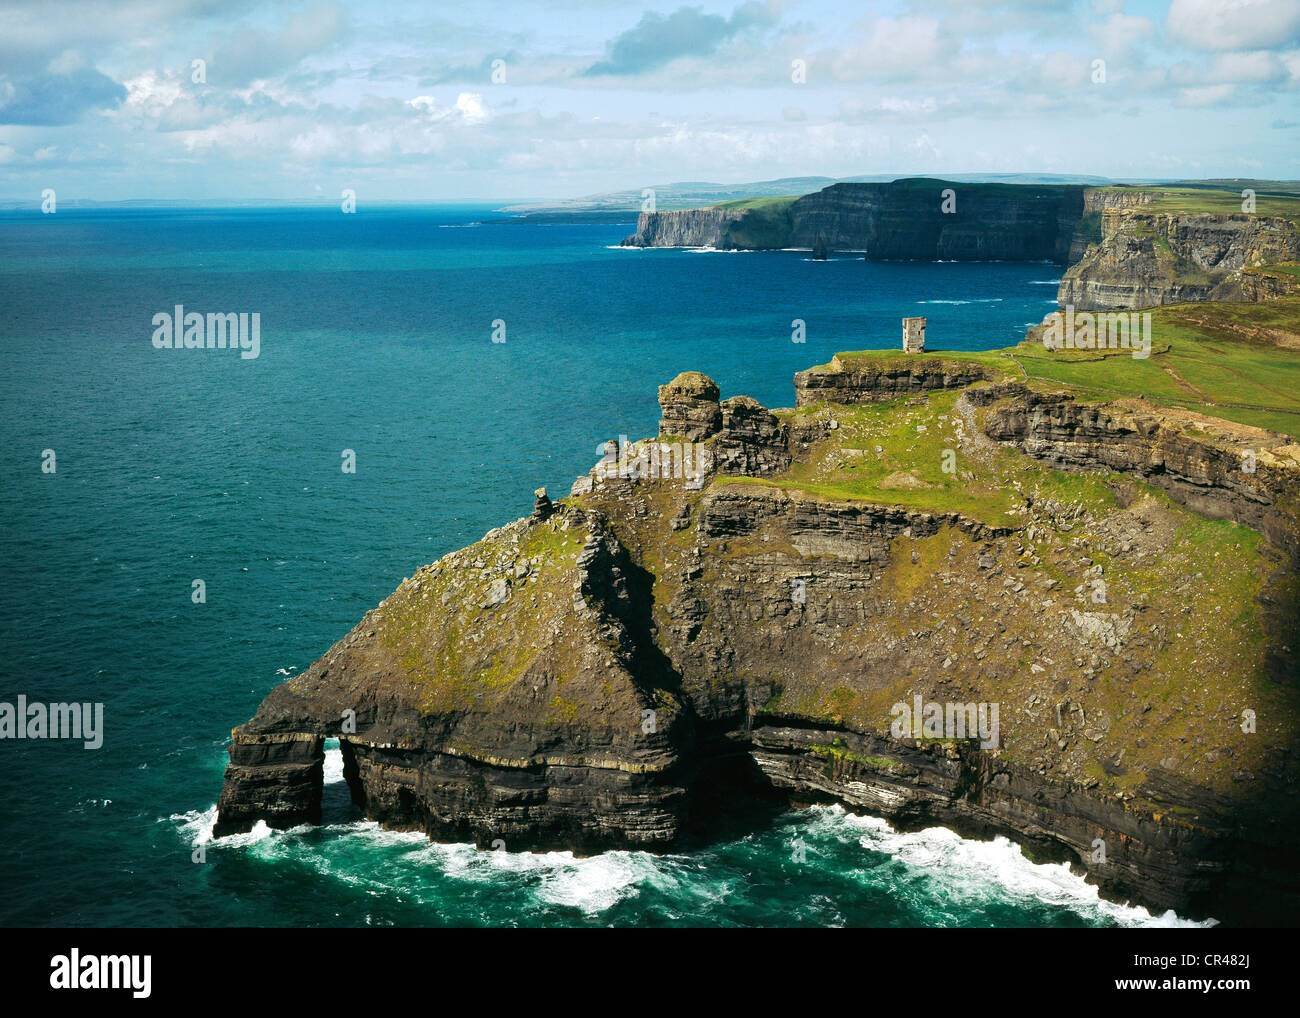 Cliffs of Moher, County Clare, Republic of Ireland, Europe - Stock Image